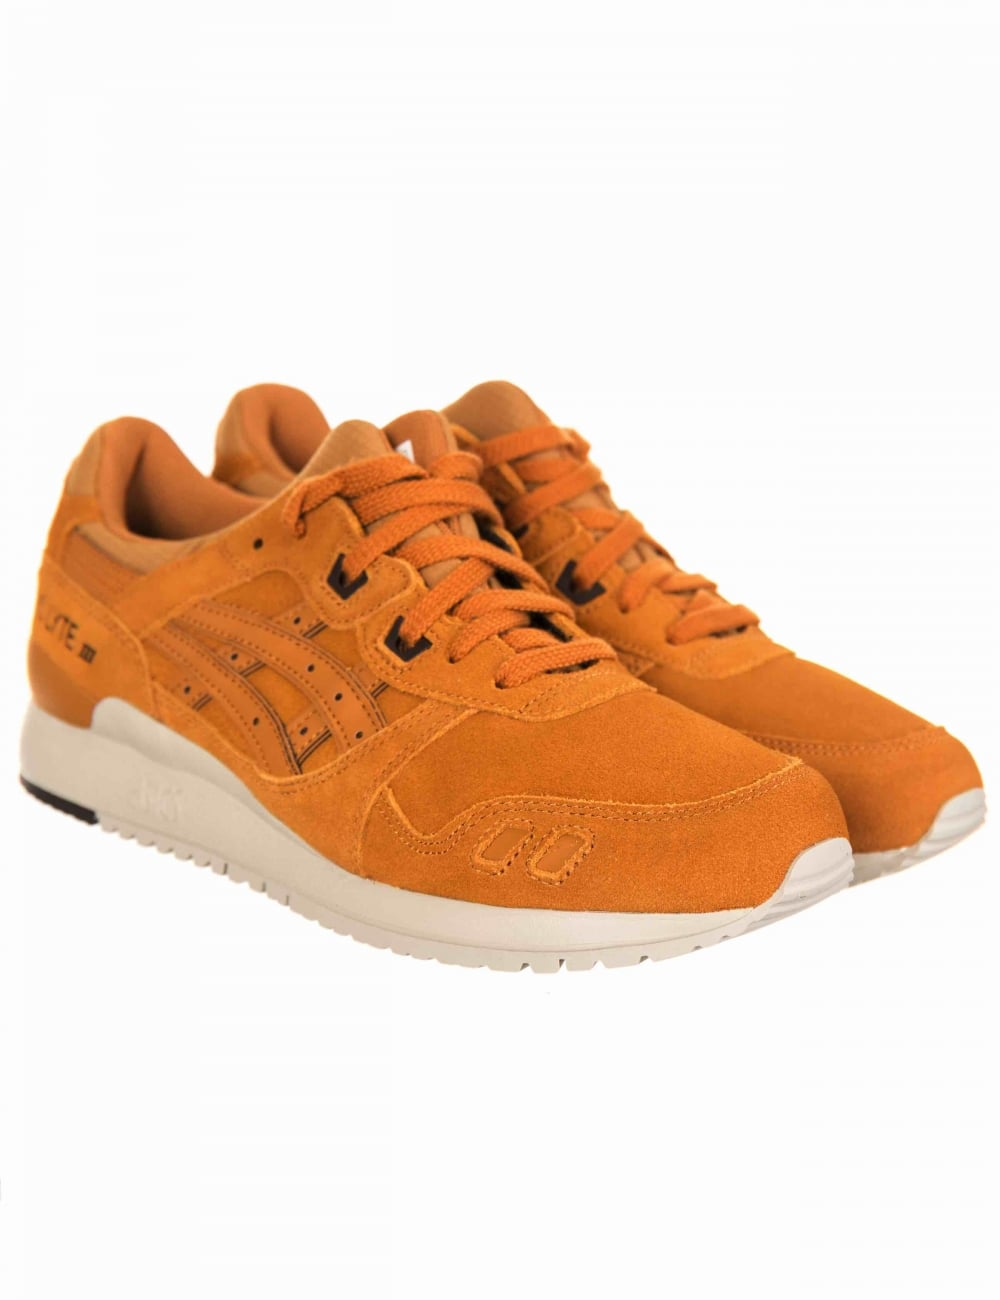 ba089f218fa3 Asics Gel Lyte III Trainers - Honey Ginger Honey - Footwear from Fat ...